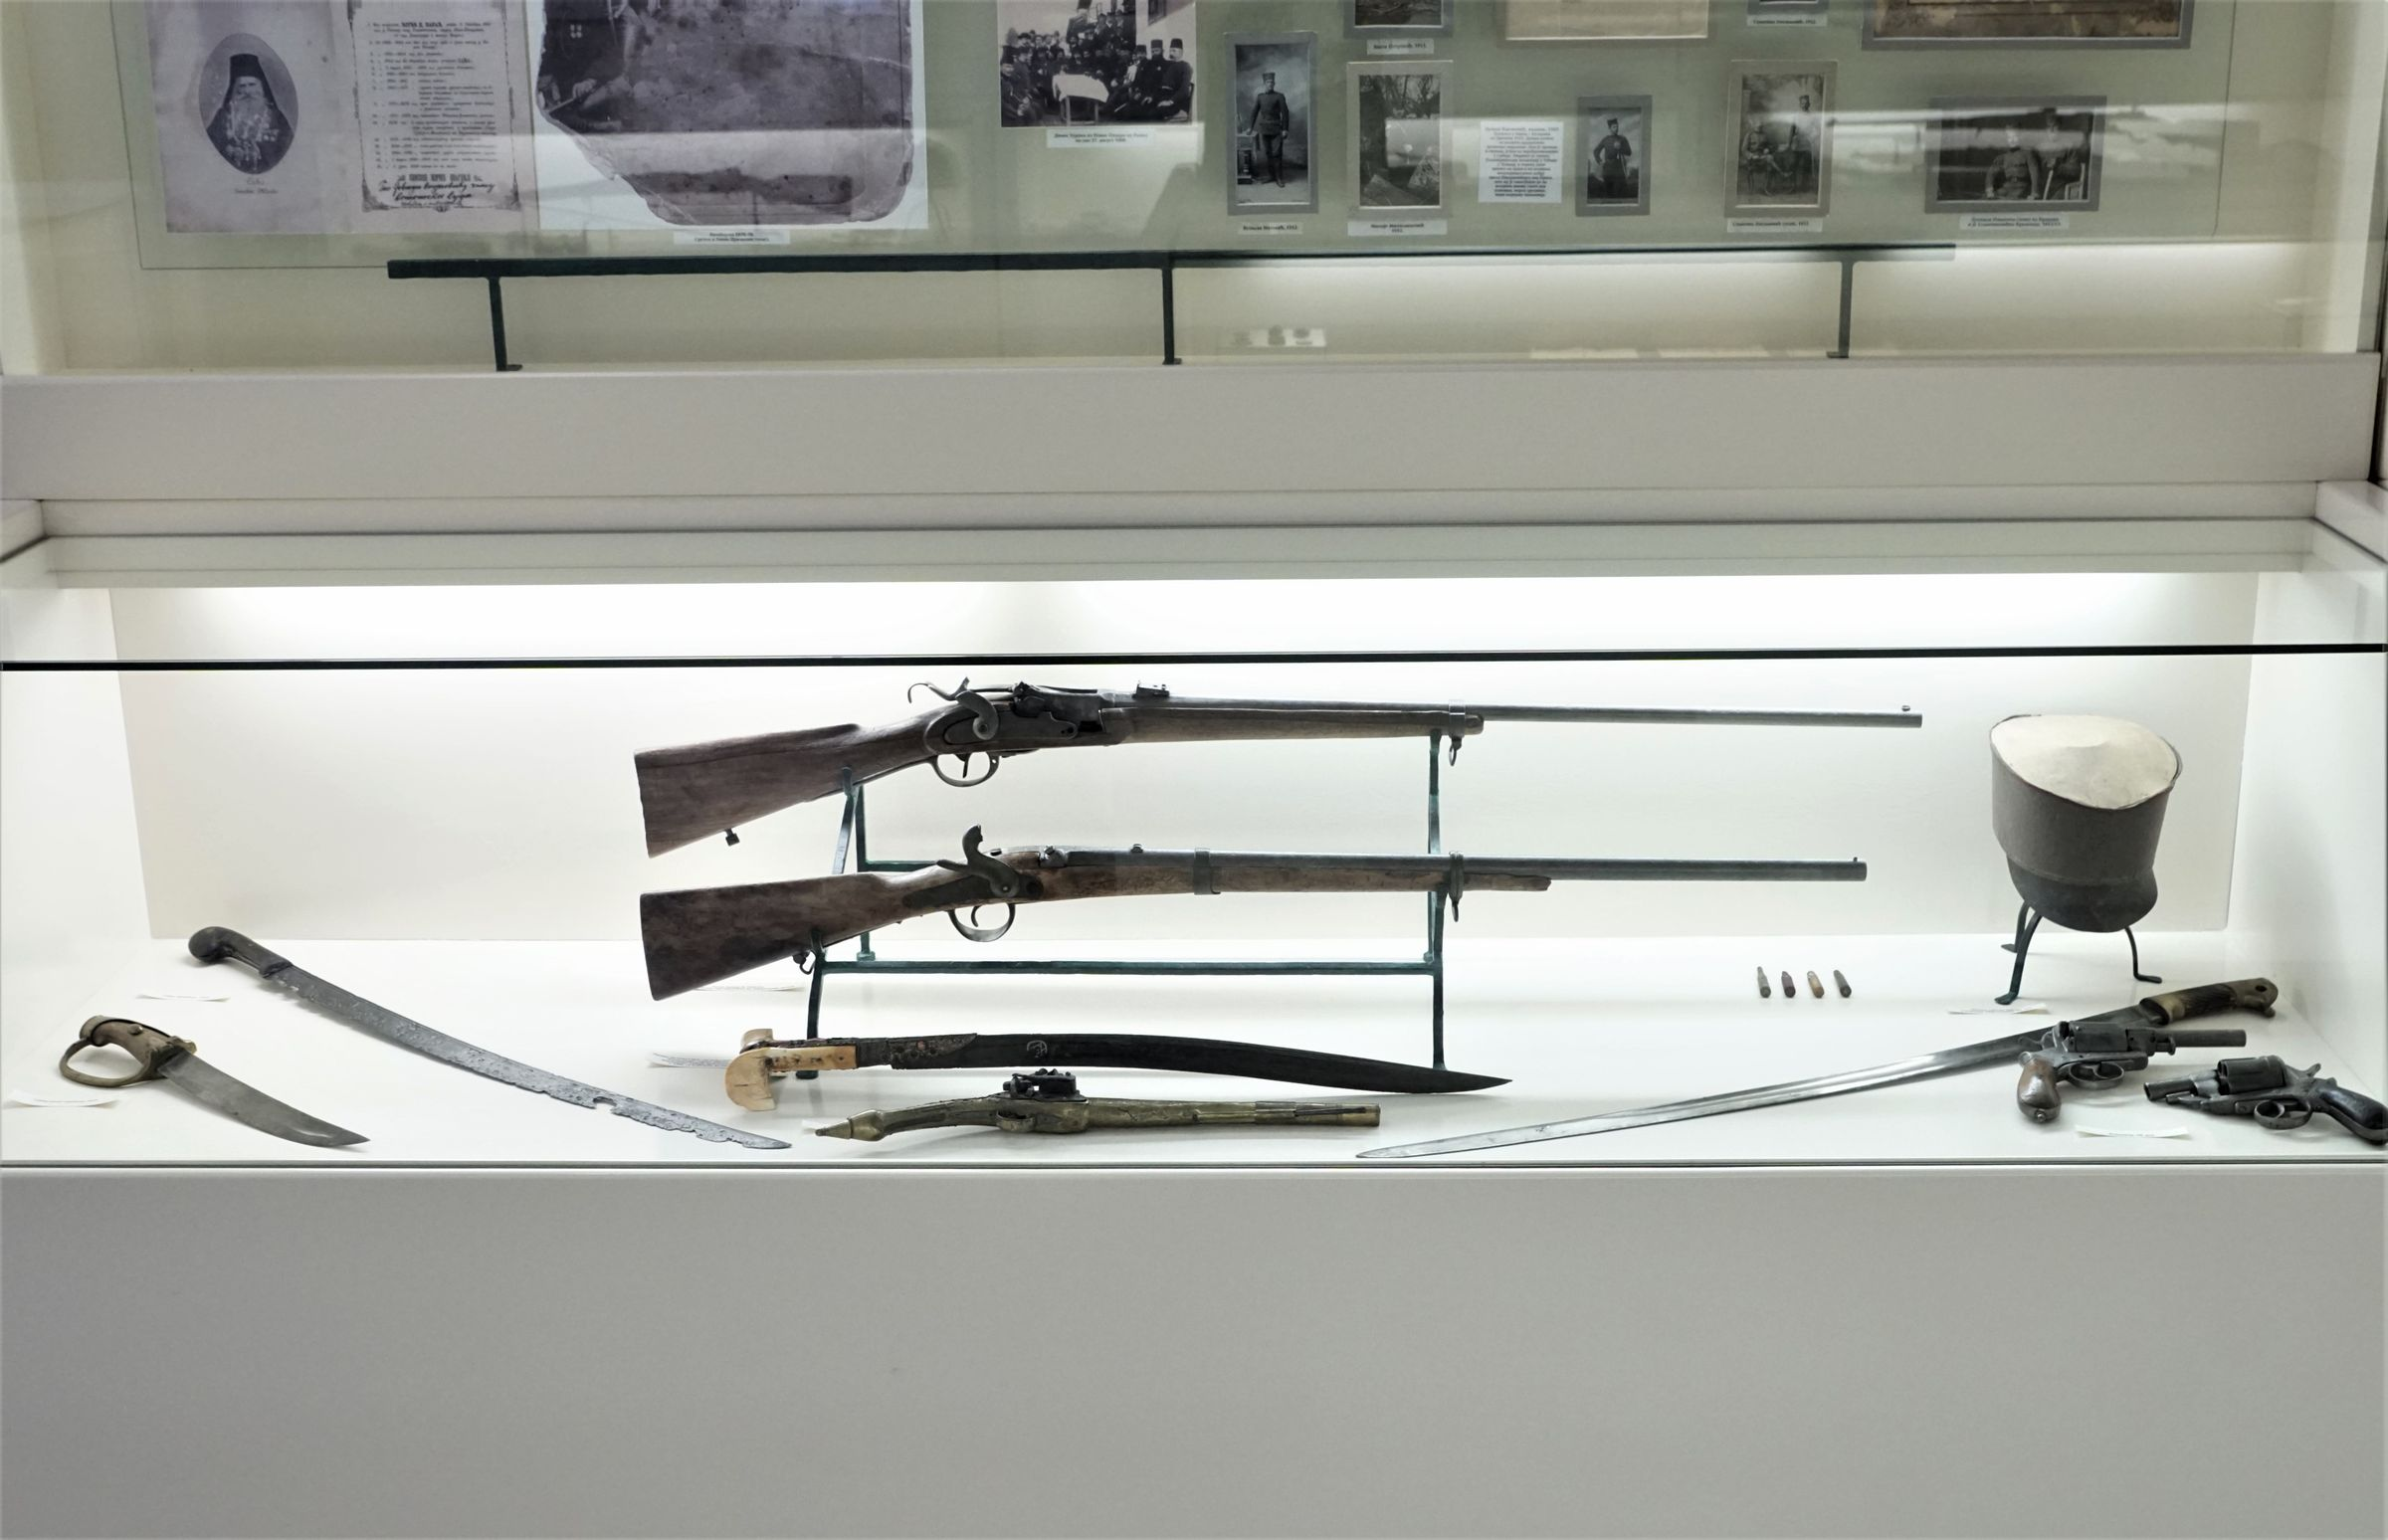 Display case with weapons of the Serbian army from the 19th century